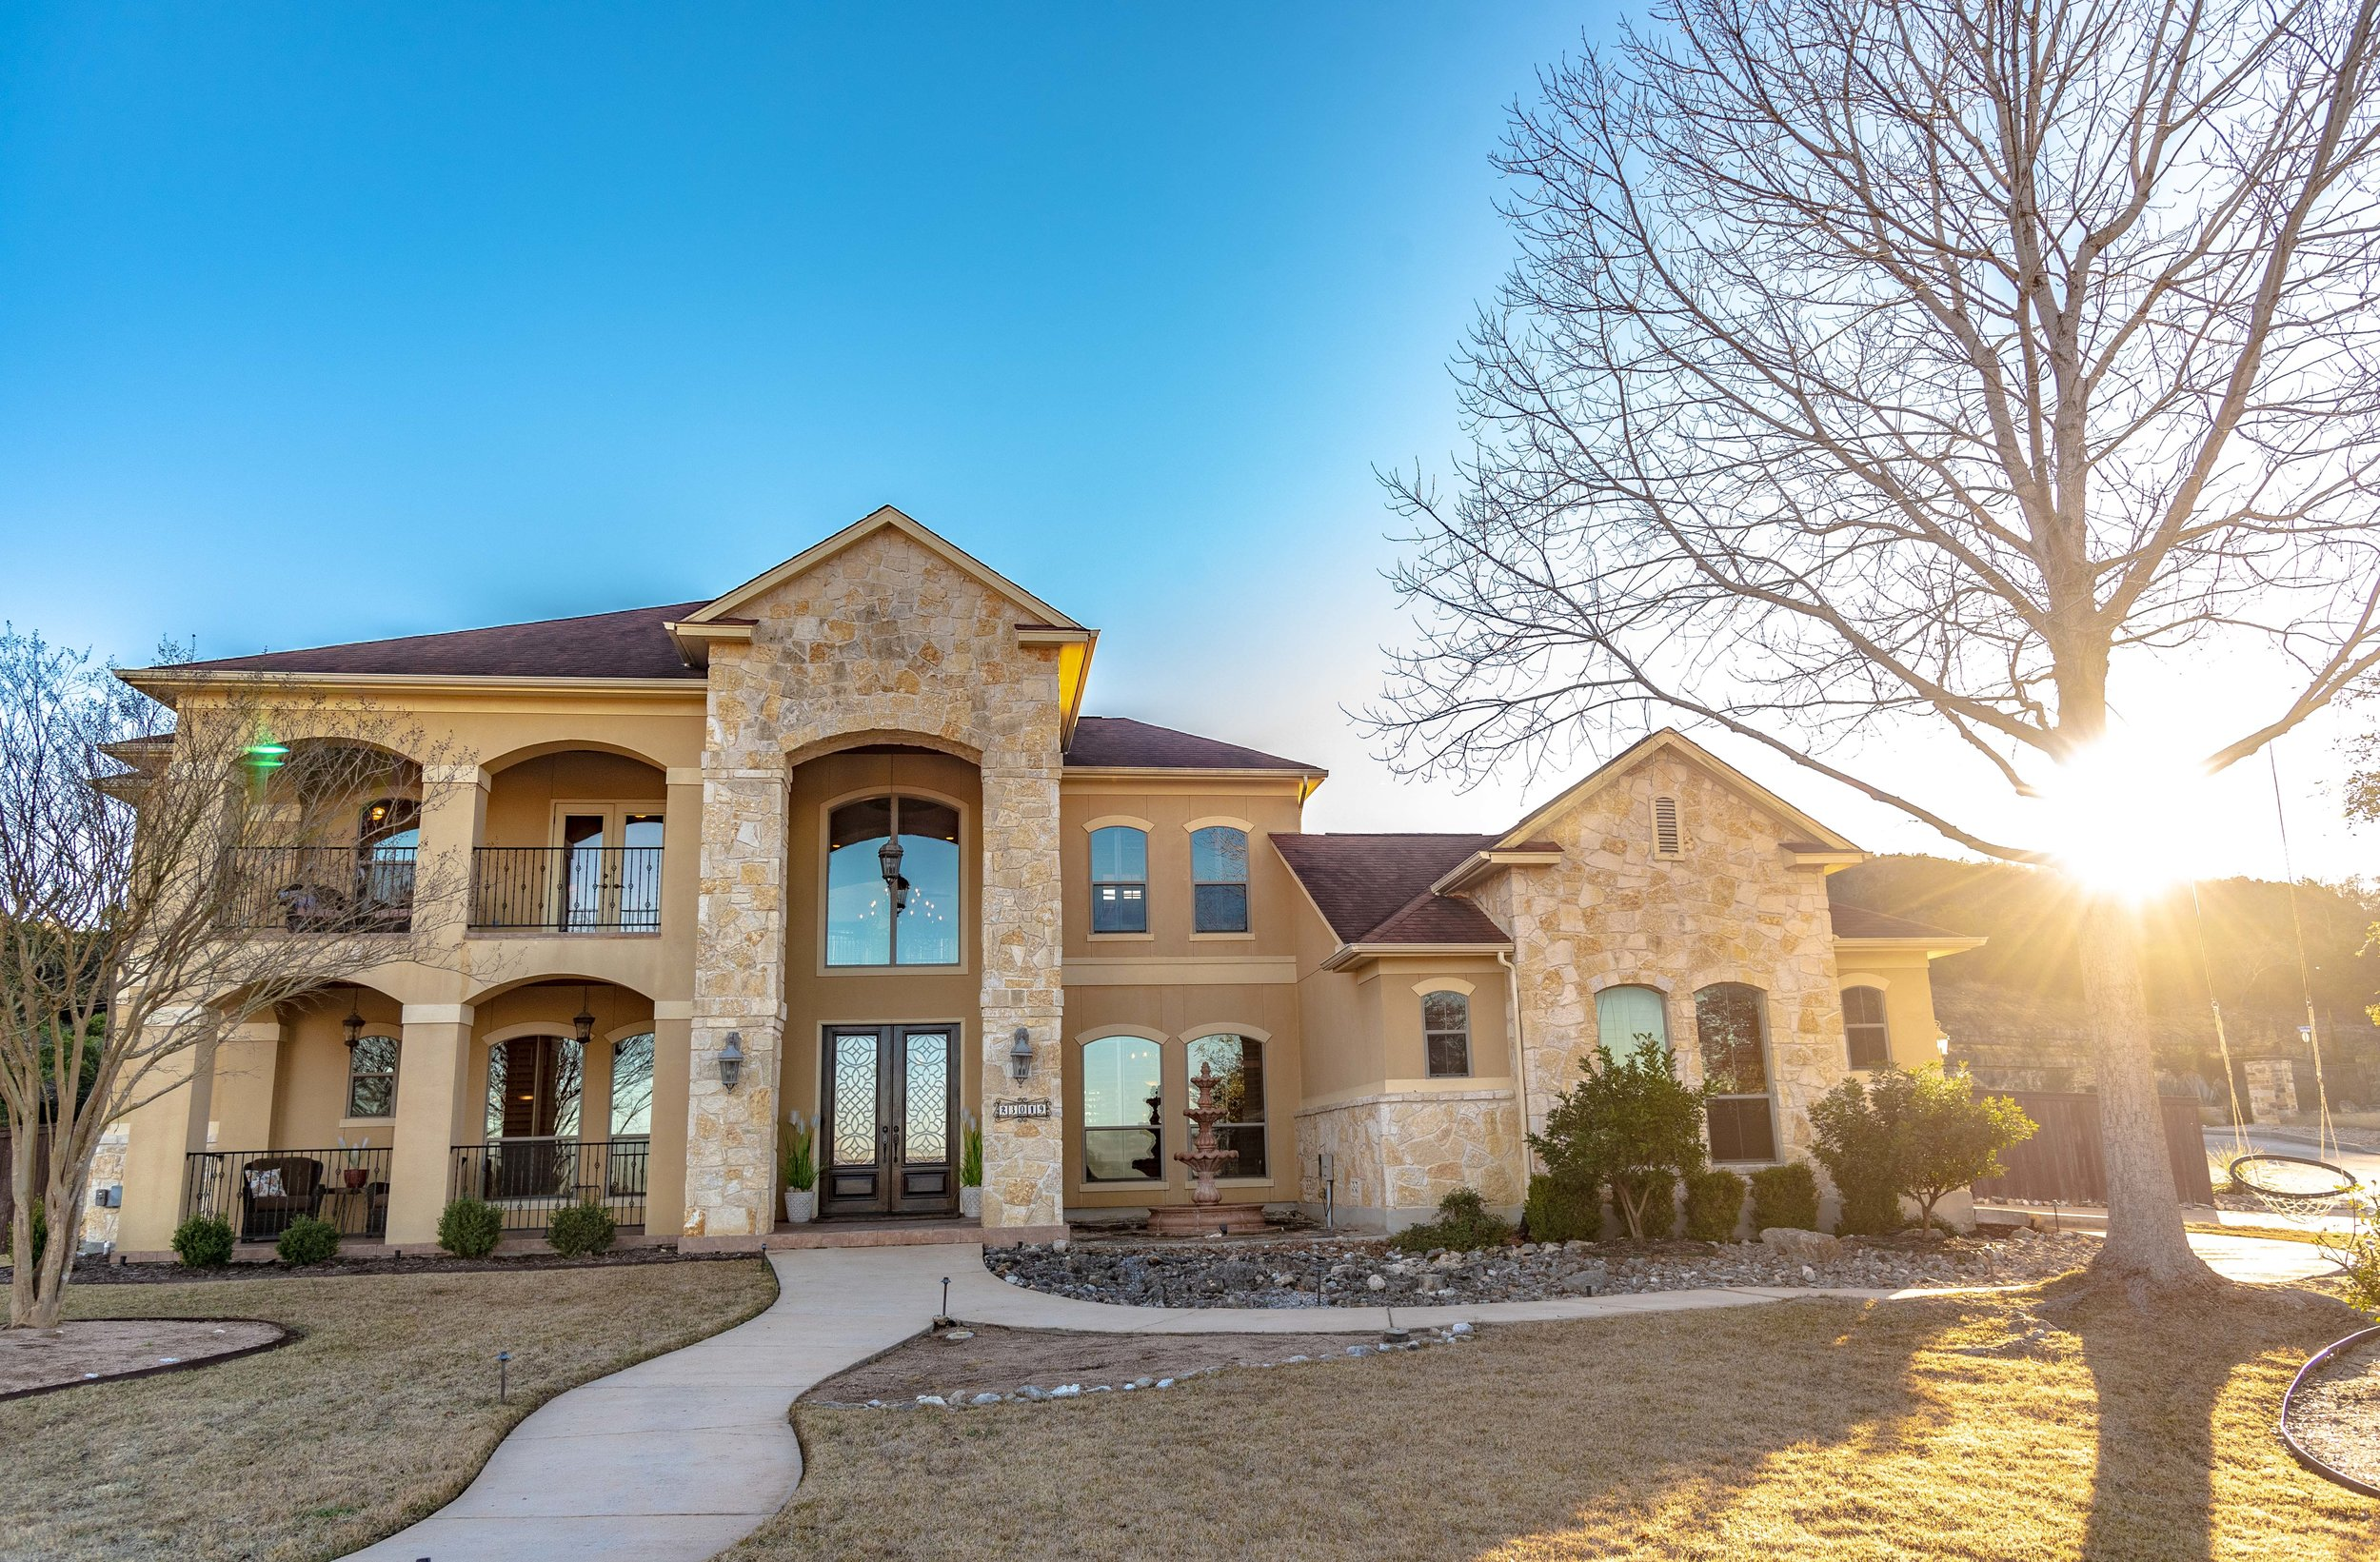 "I find that the best time to take real estate photos is in the evening, anywhere from 5:30 to 7:30 is optimal. This allows for softer shadows and a setting sun that you can use within your photograph to maximize the ""wow"" factor of your image."